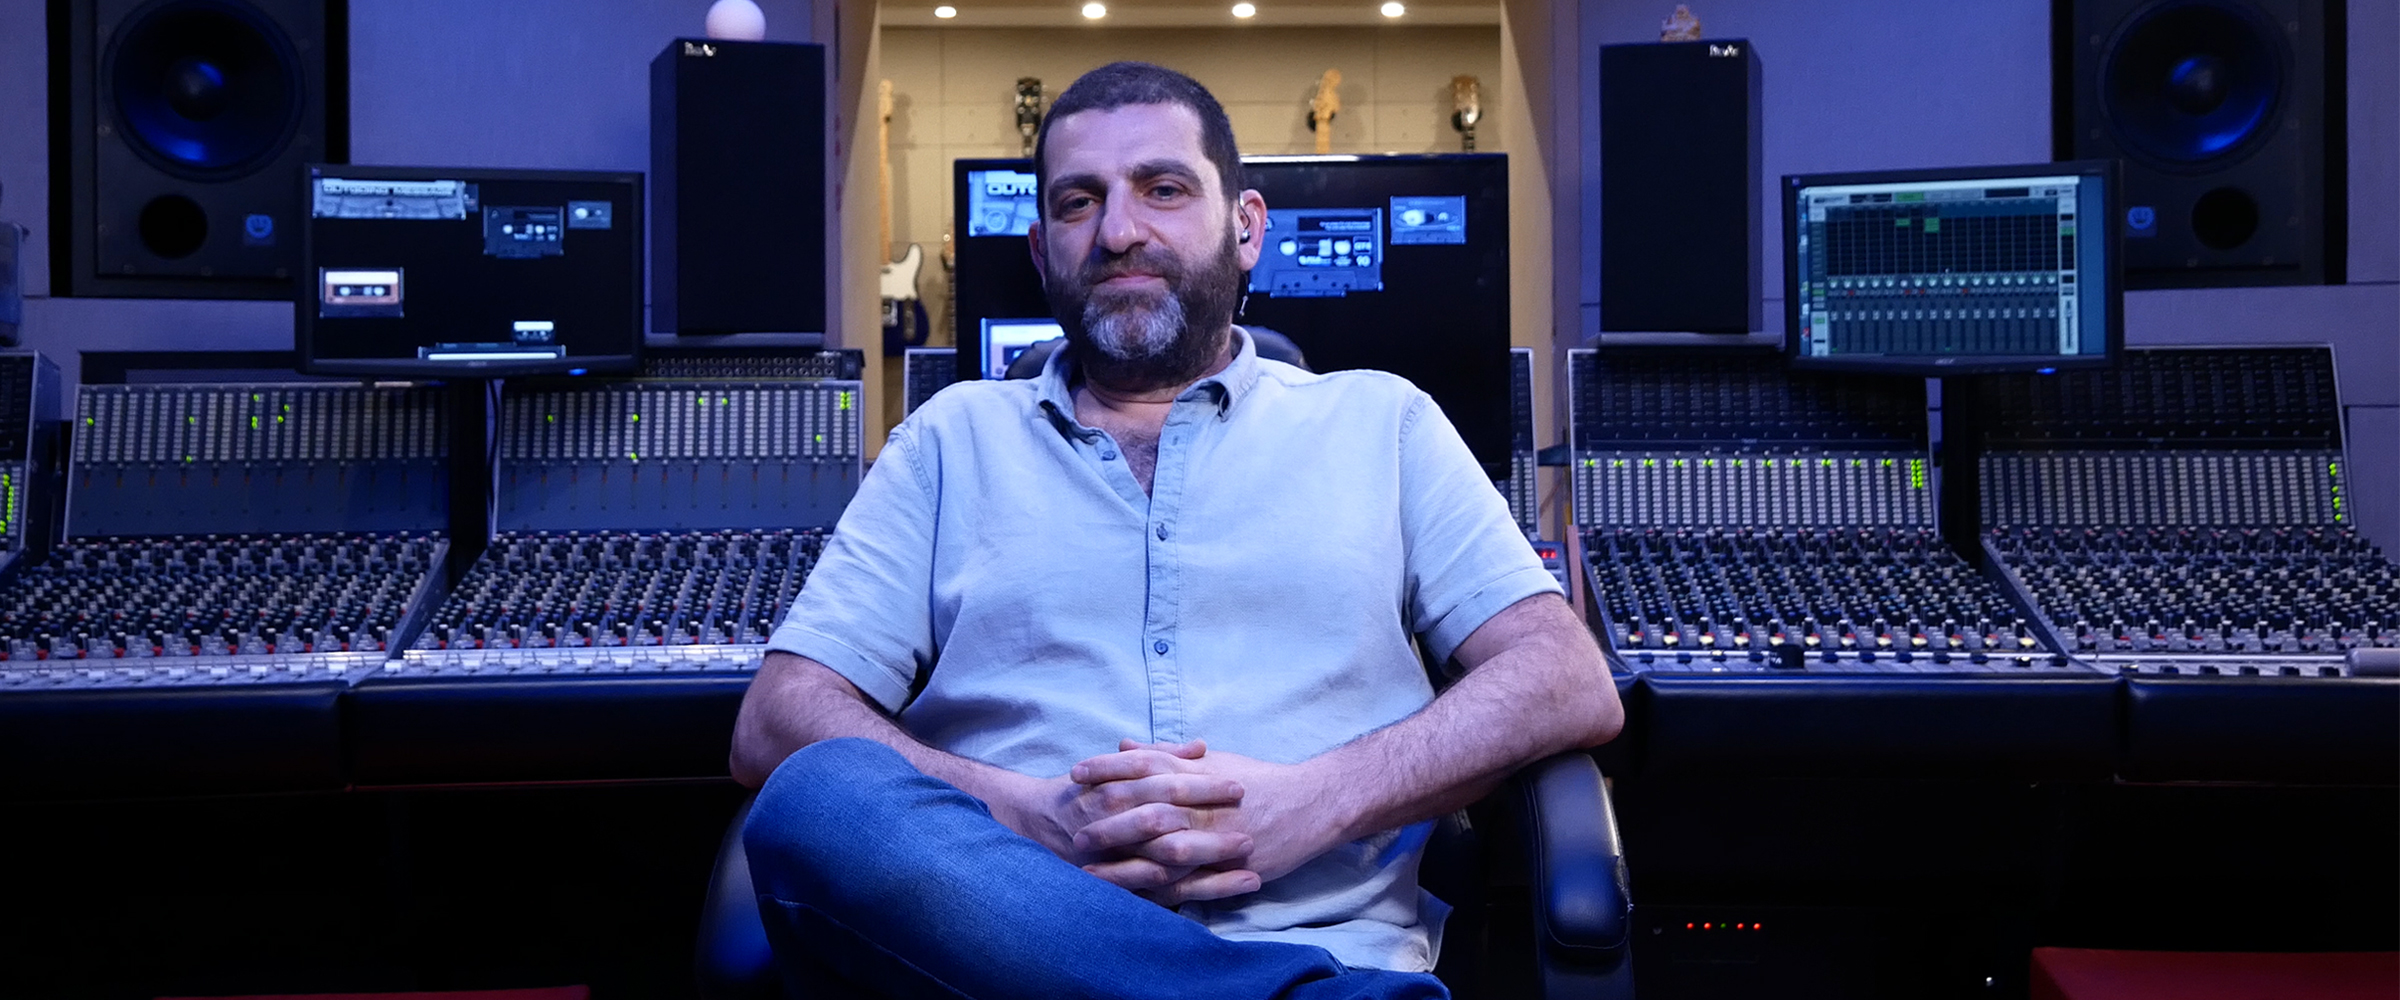 Prep the Mix for Success with Yoad Nevo